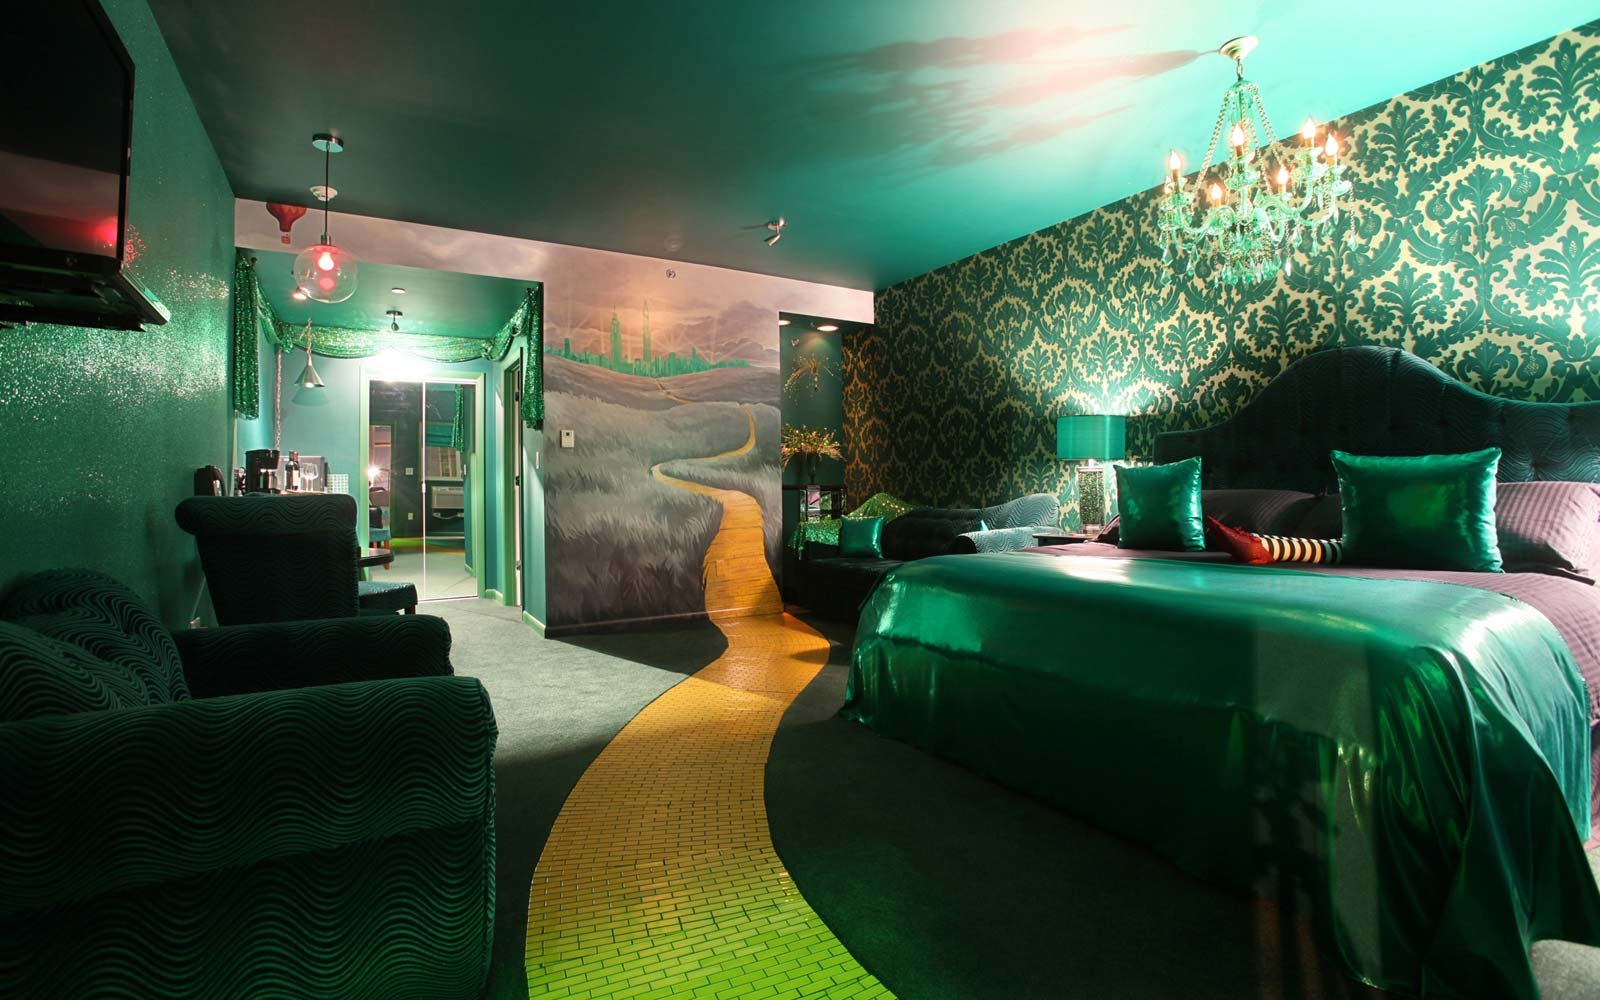 Amazing Hotel Rooms Inspired Favorite Film And